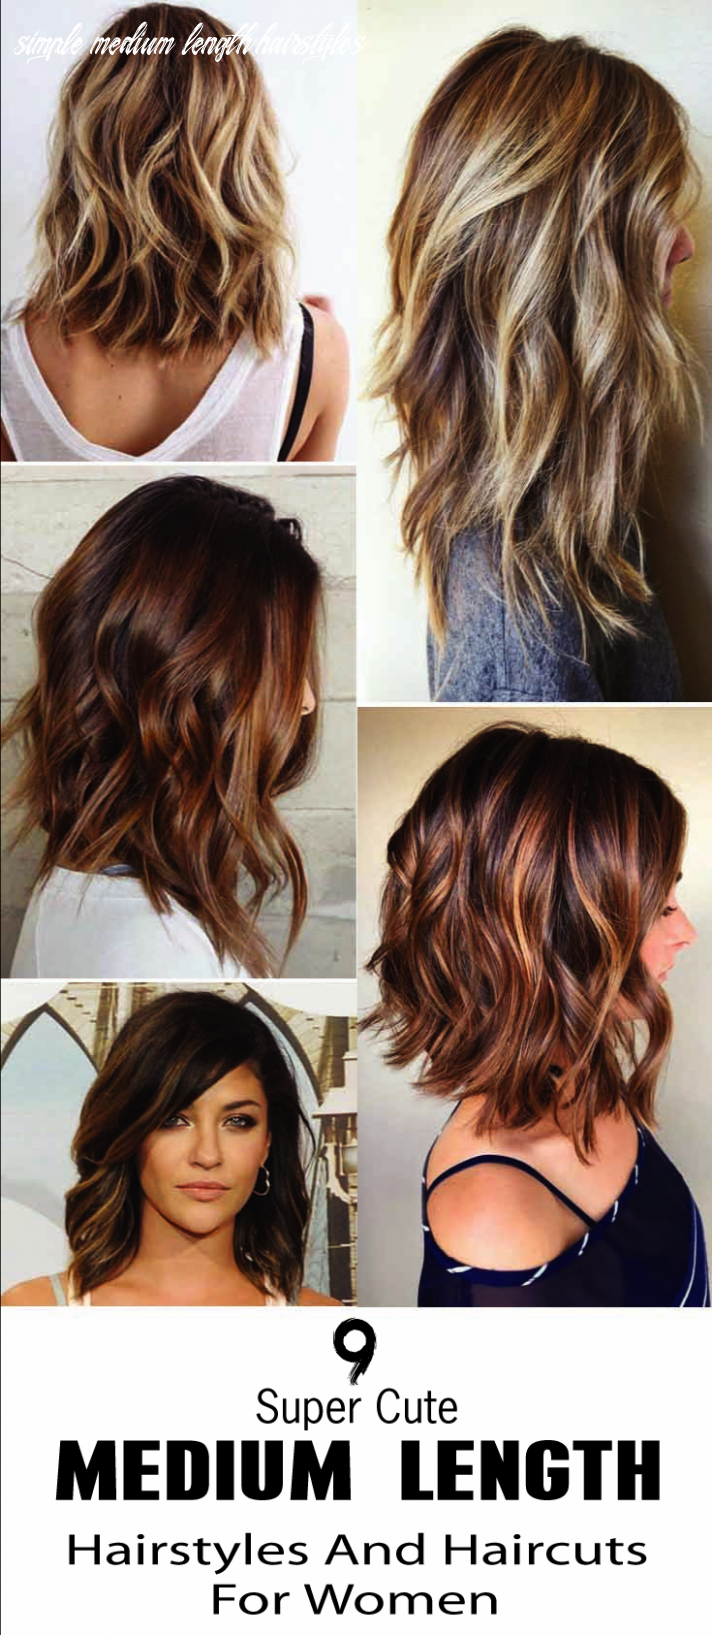 10 super cute medium length hairstyles and haircuts for women